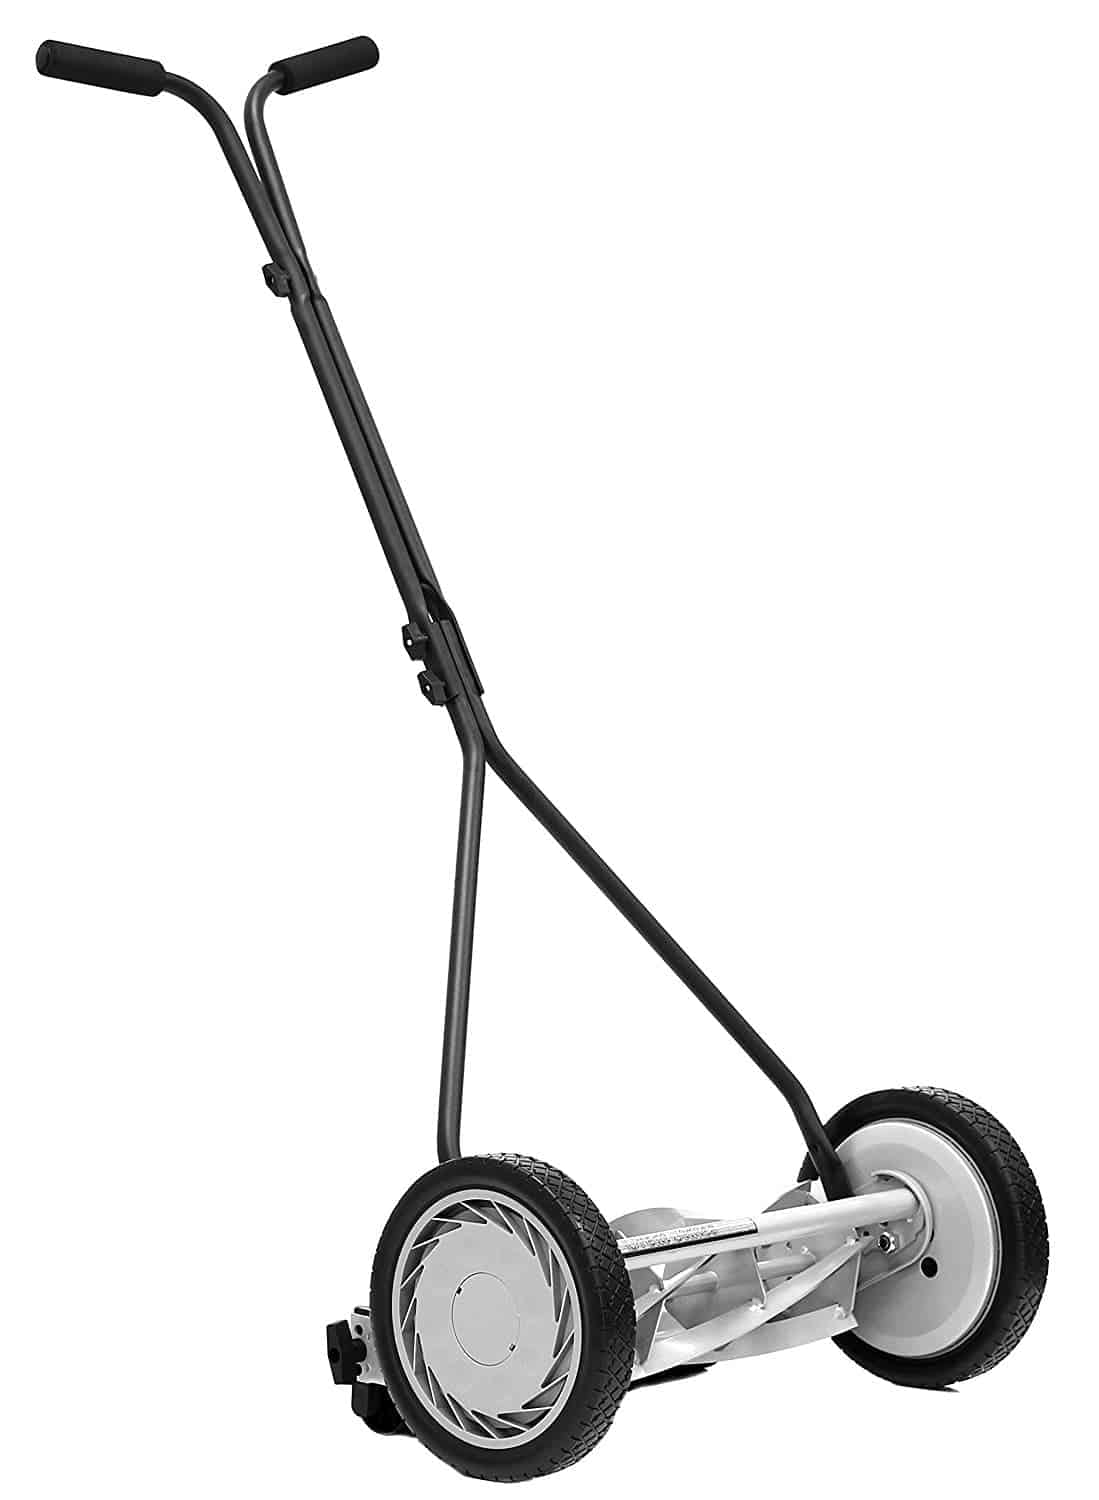 Reel mower standard feature with t-style handle and heat treated blades.